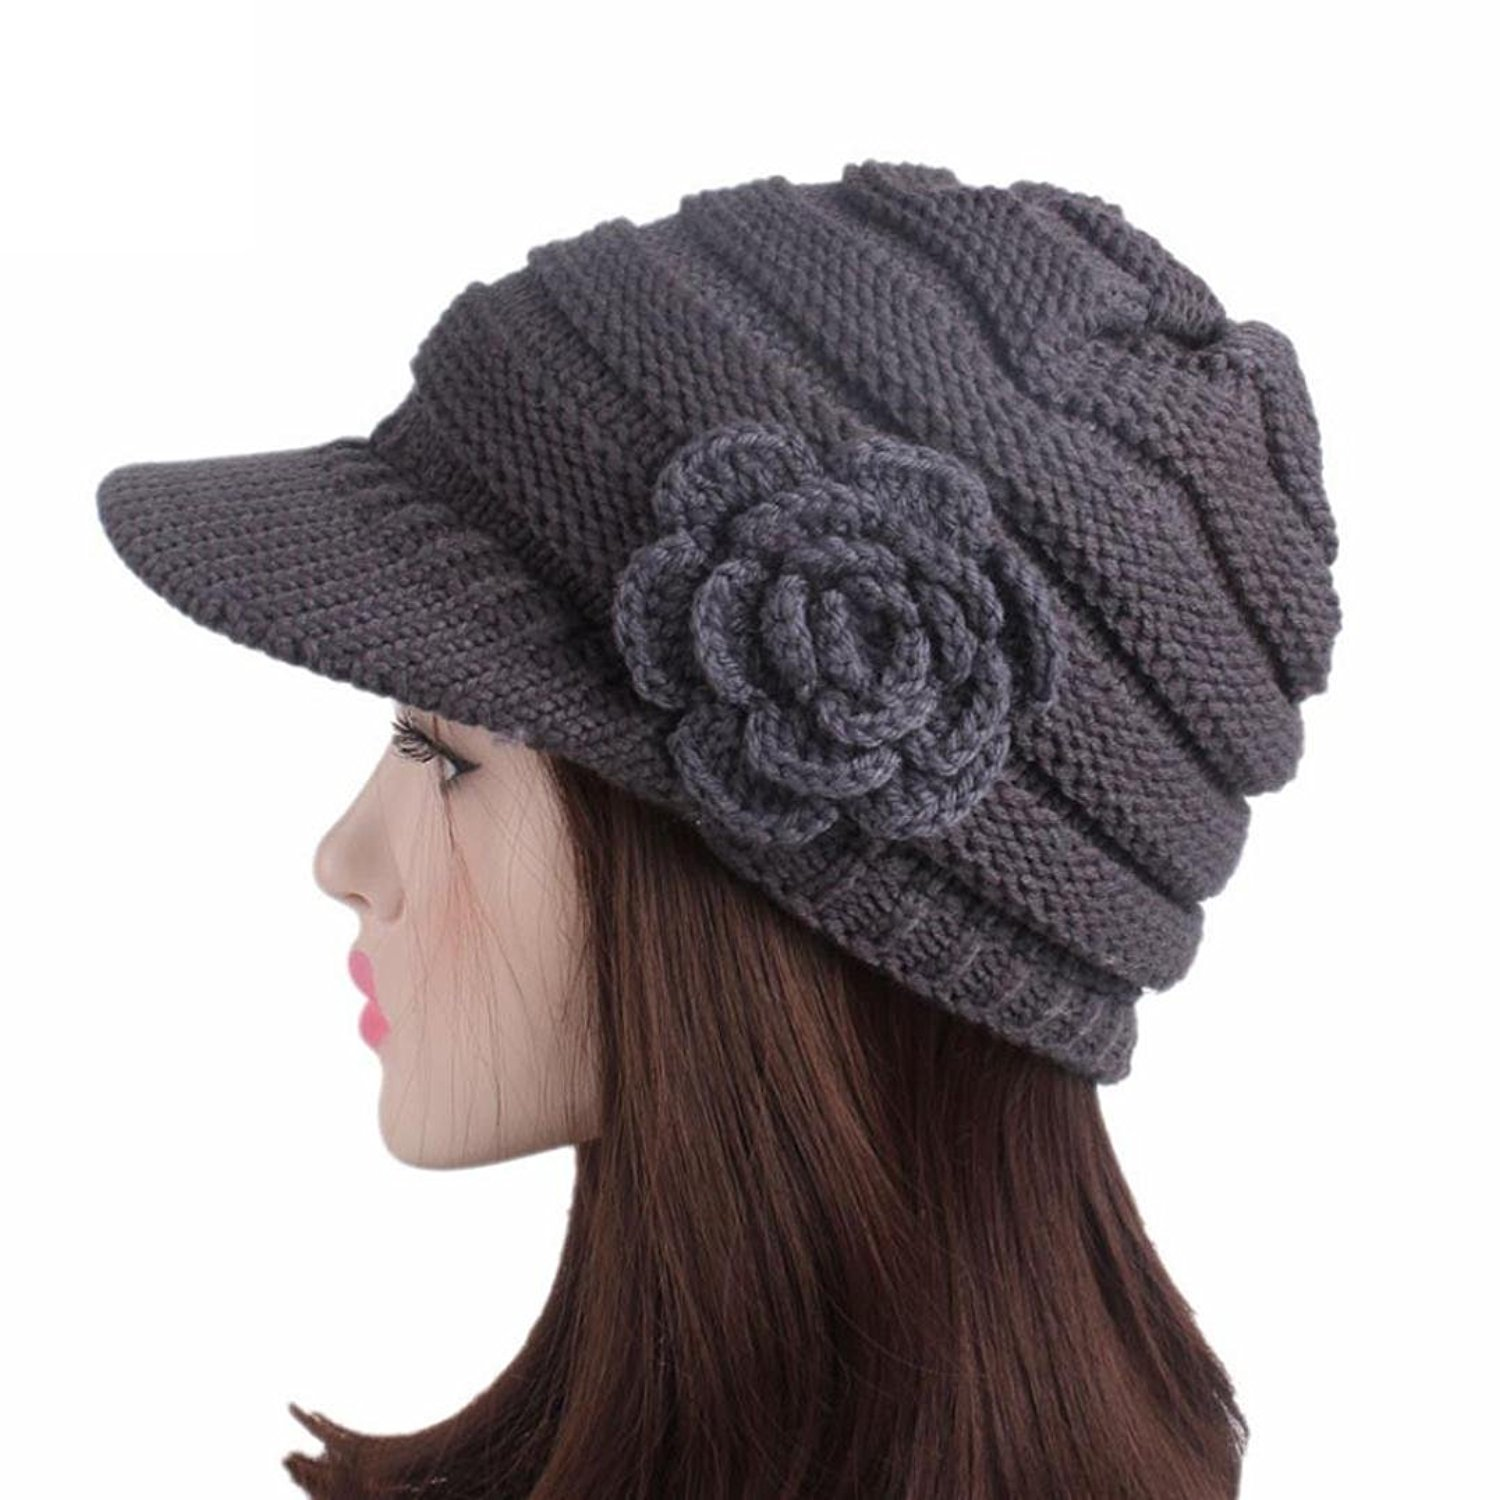 847a01a5625 Get Quotations · Creazydog Creazy Women Ladies Winter Knitting Hat Berets  Turban Brim Hat Cap Pile Warm Hat